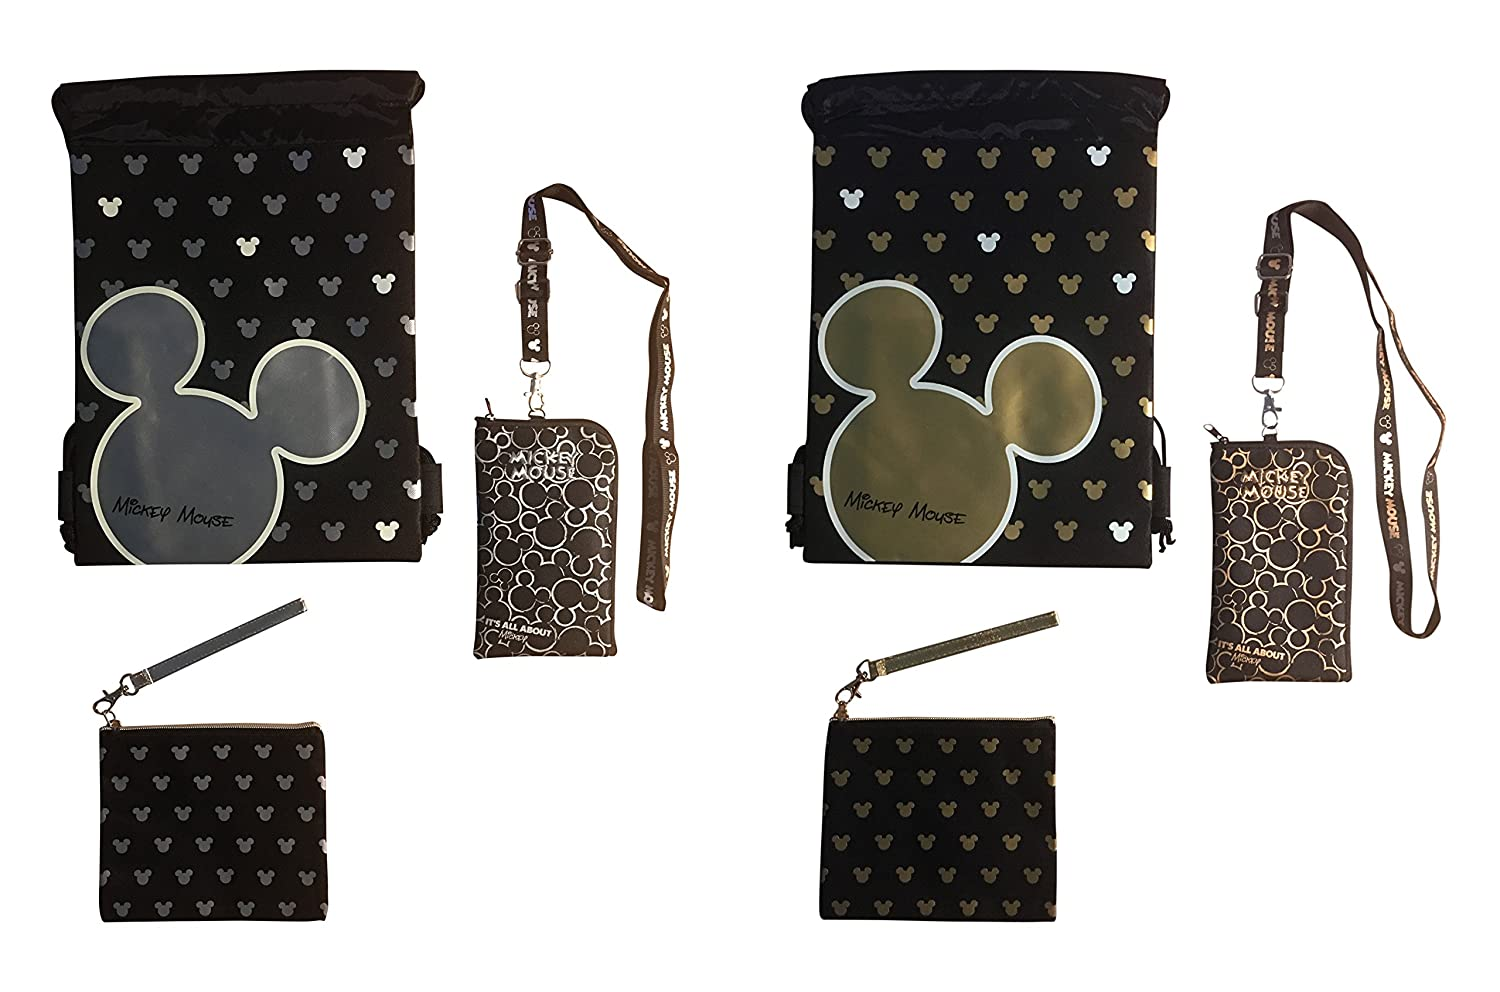 4d9ffc0e0d8 Disney Mickey Mouse Glow in the Dark Drawstring Backpack - Lanyard -  Wristlet Bundle (Varied